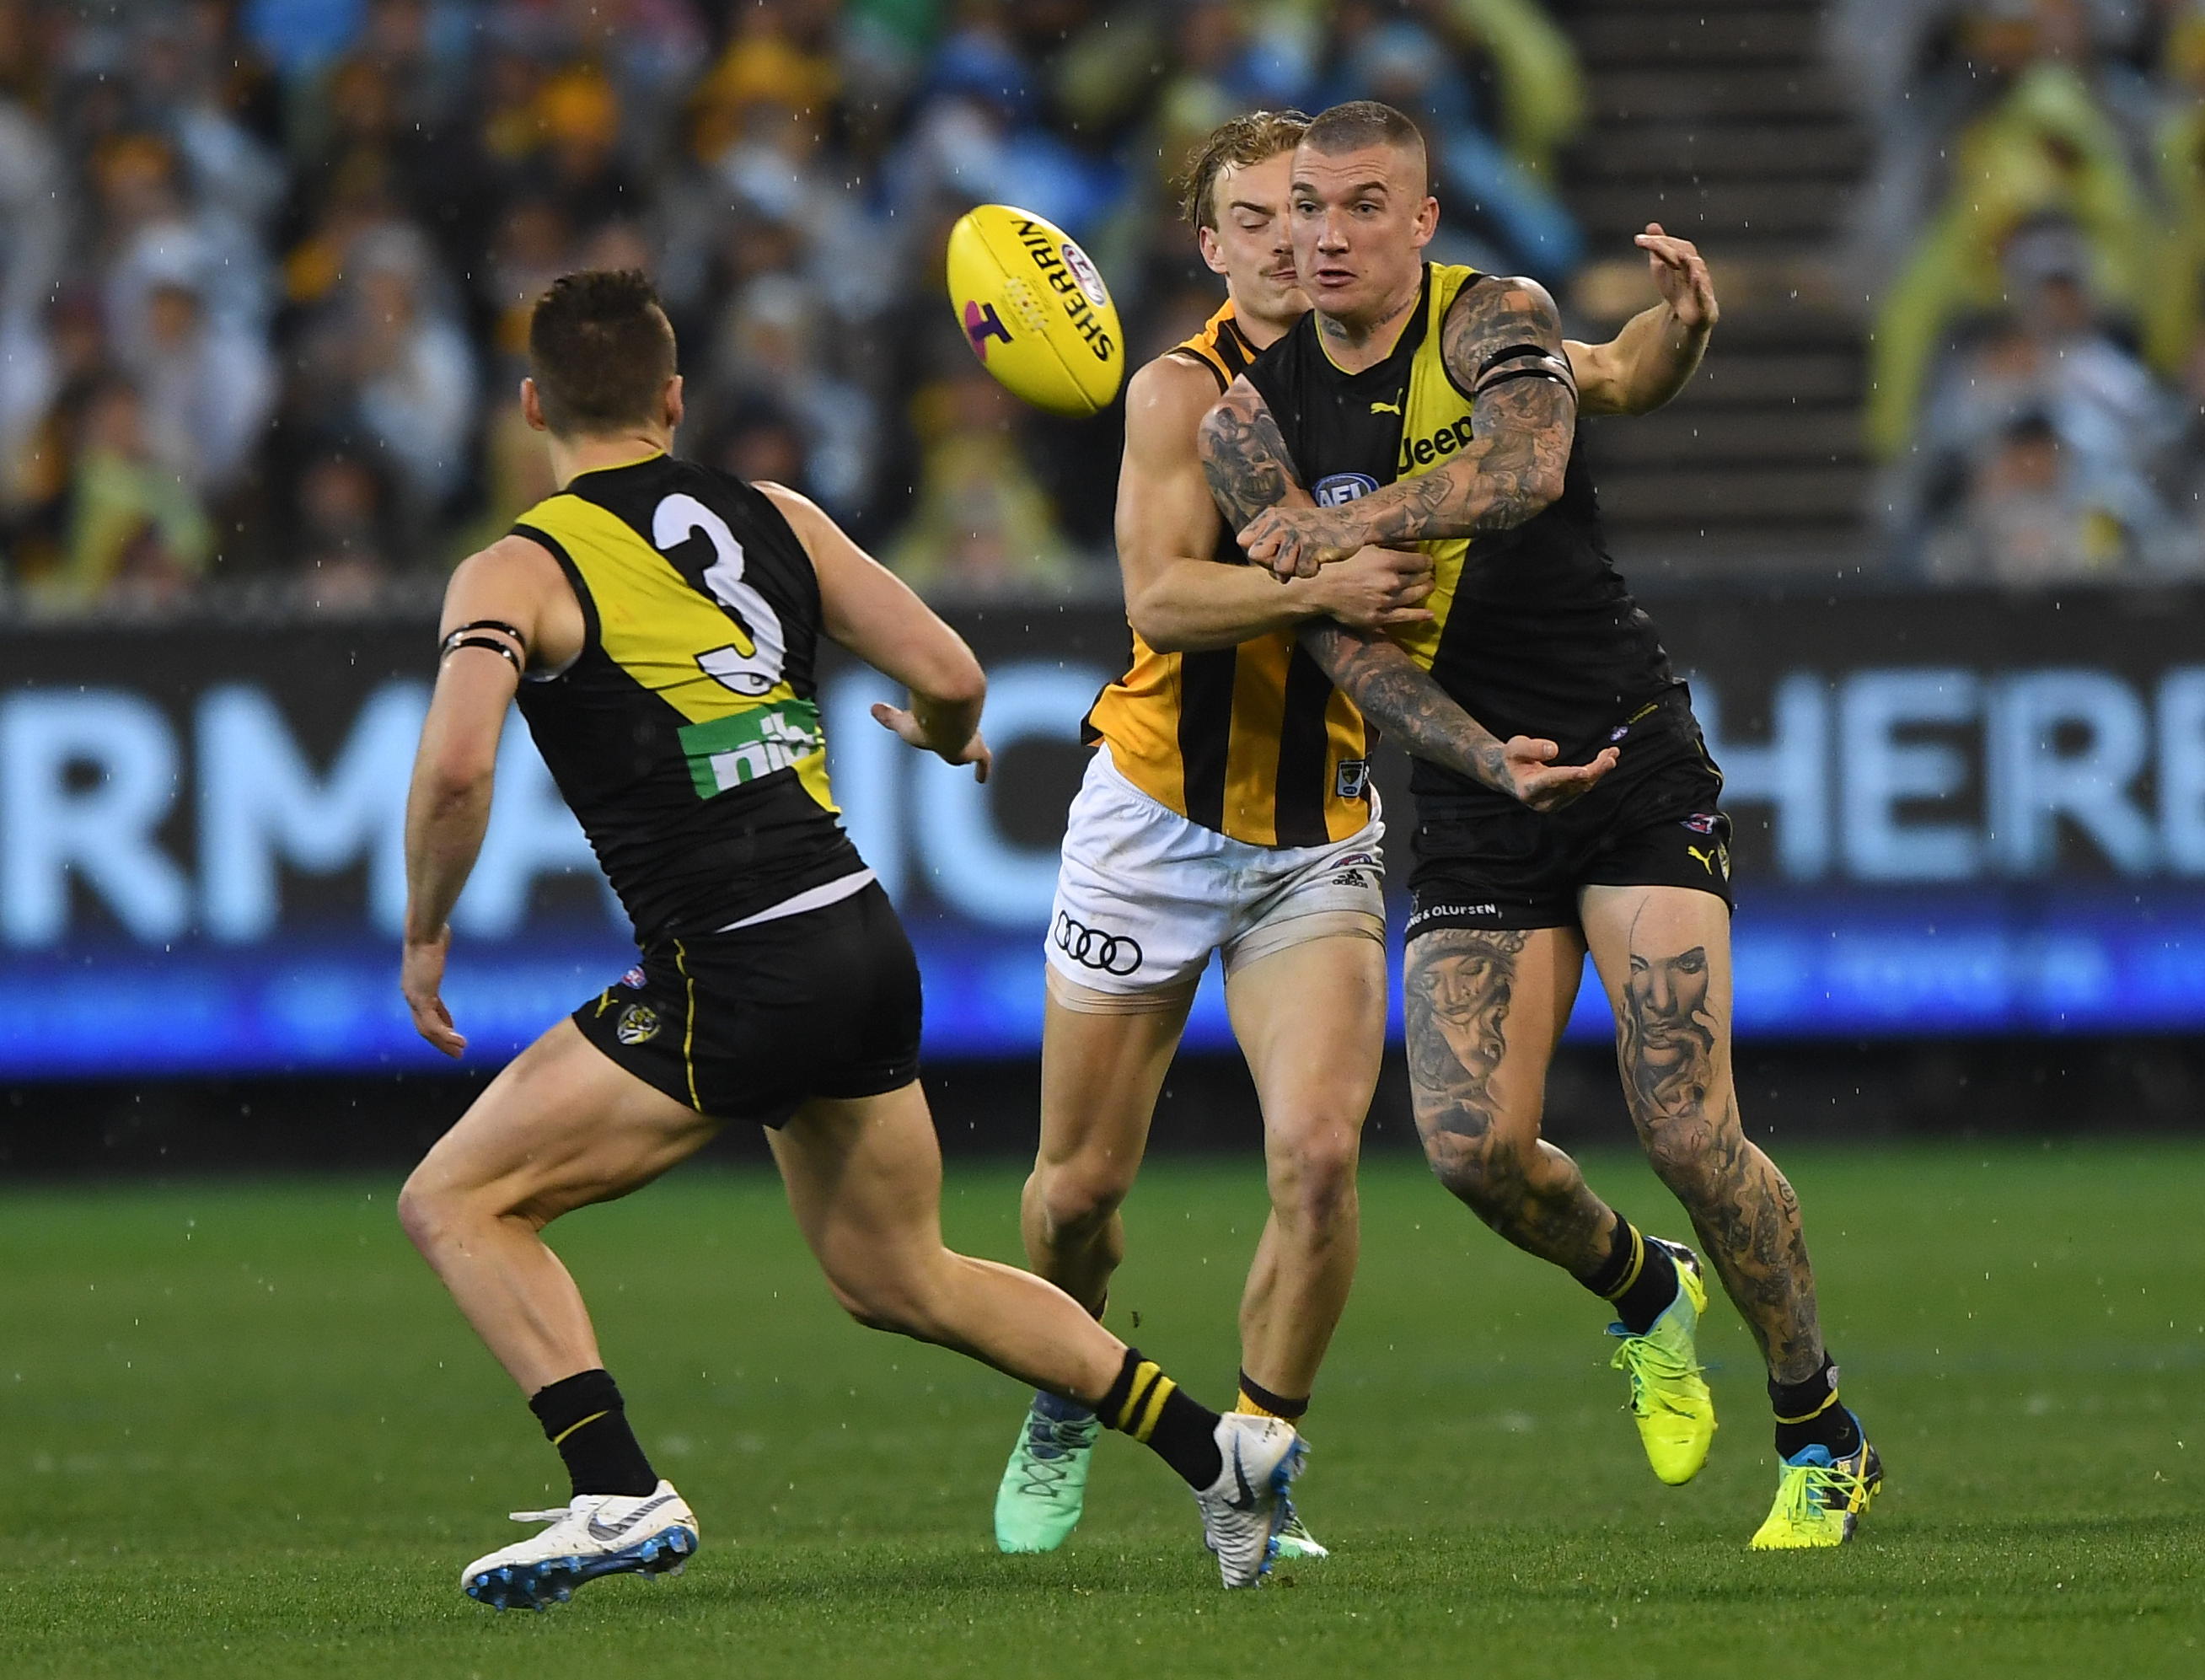 Article image for Tigers take a convincing win over the Hawks